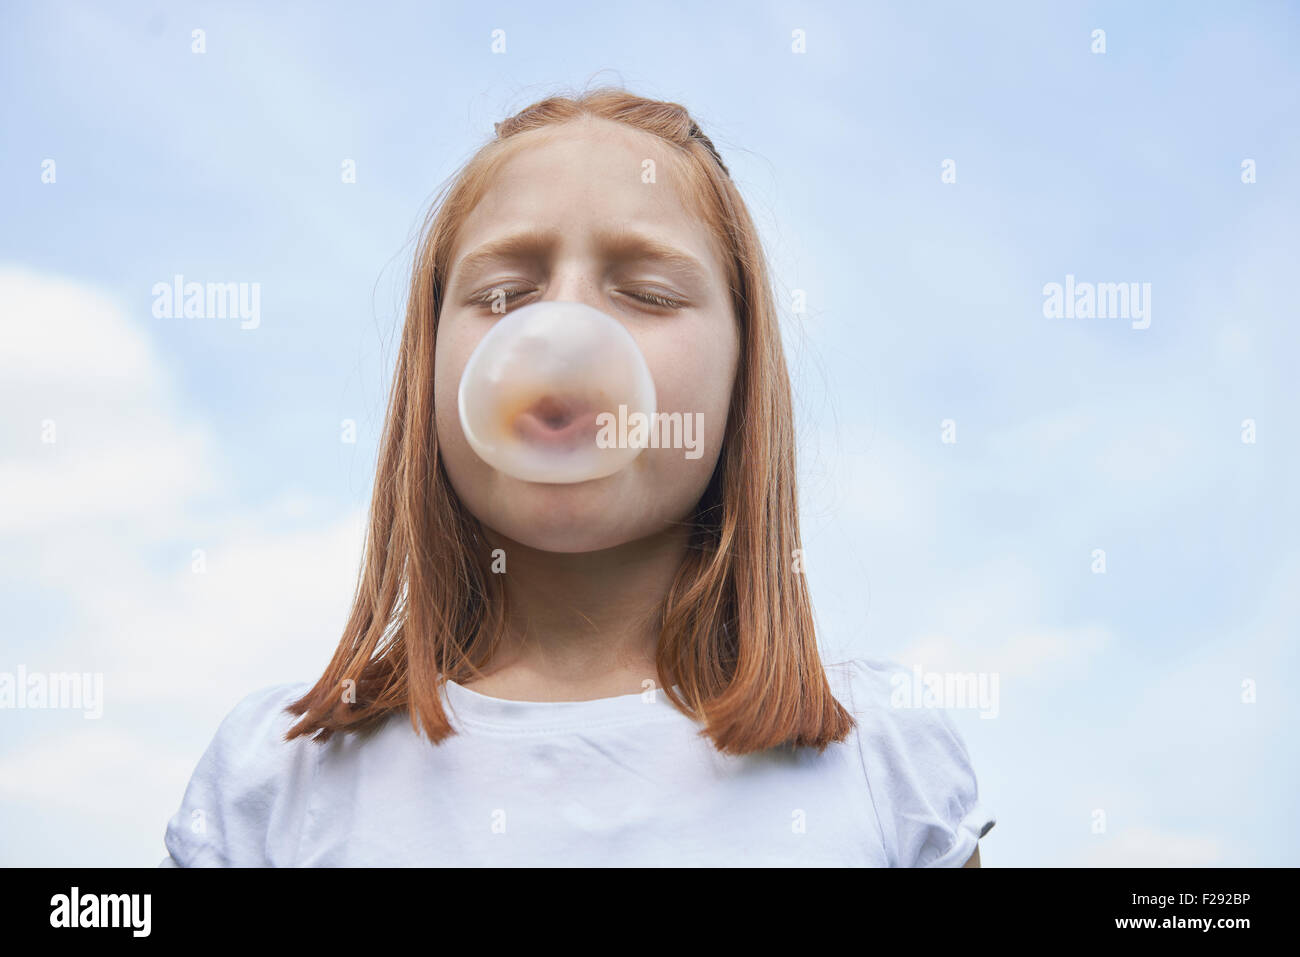 Girl blowing chewing gum bubble, Bavaria, Germany - Stock Image